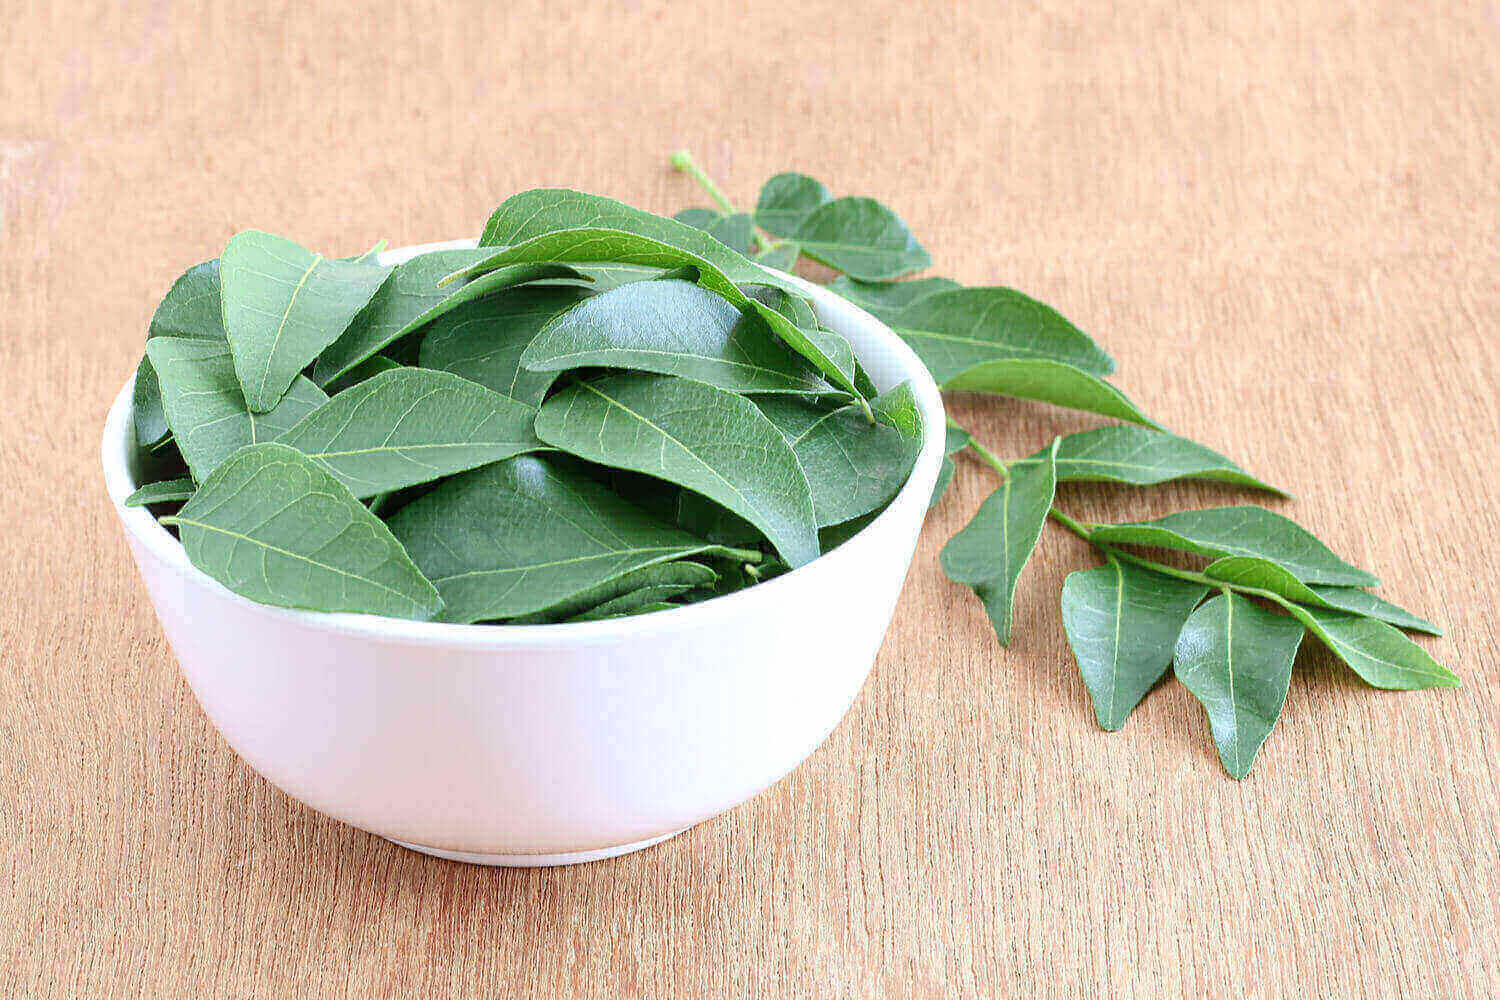 Eating Curry Leaves During Pregnancy: Benefits and Precautions